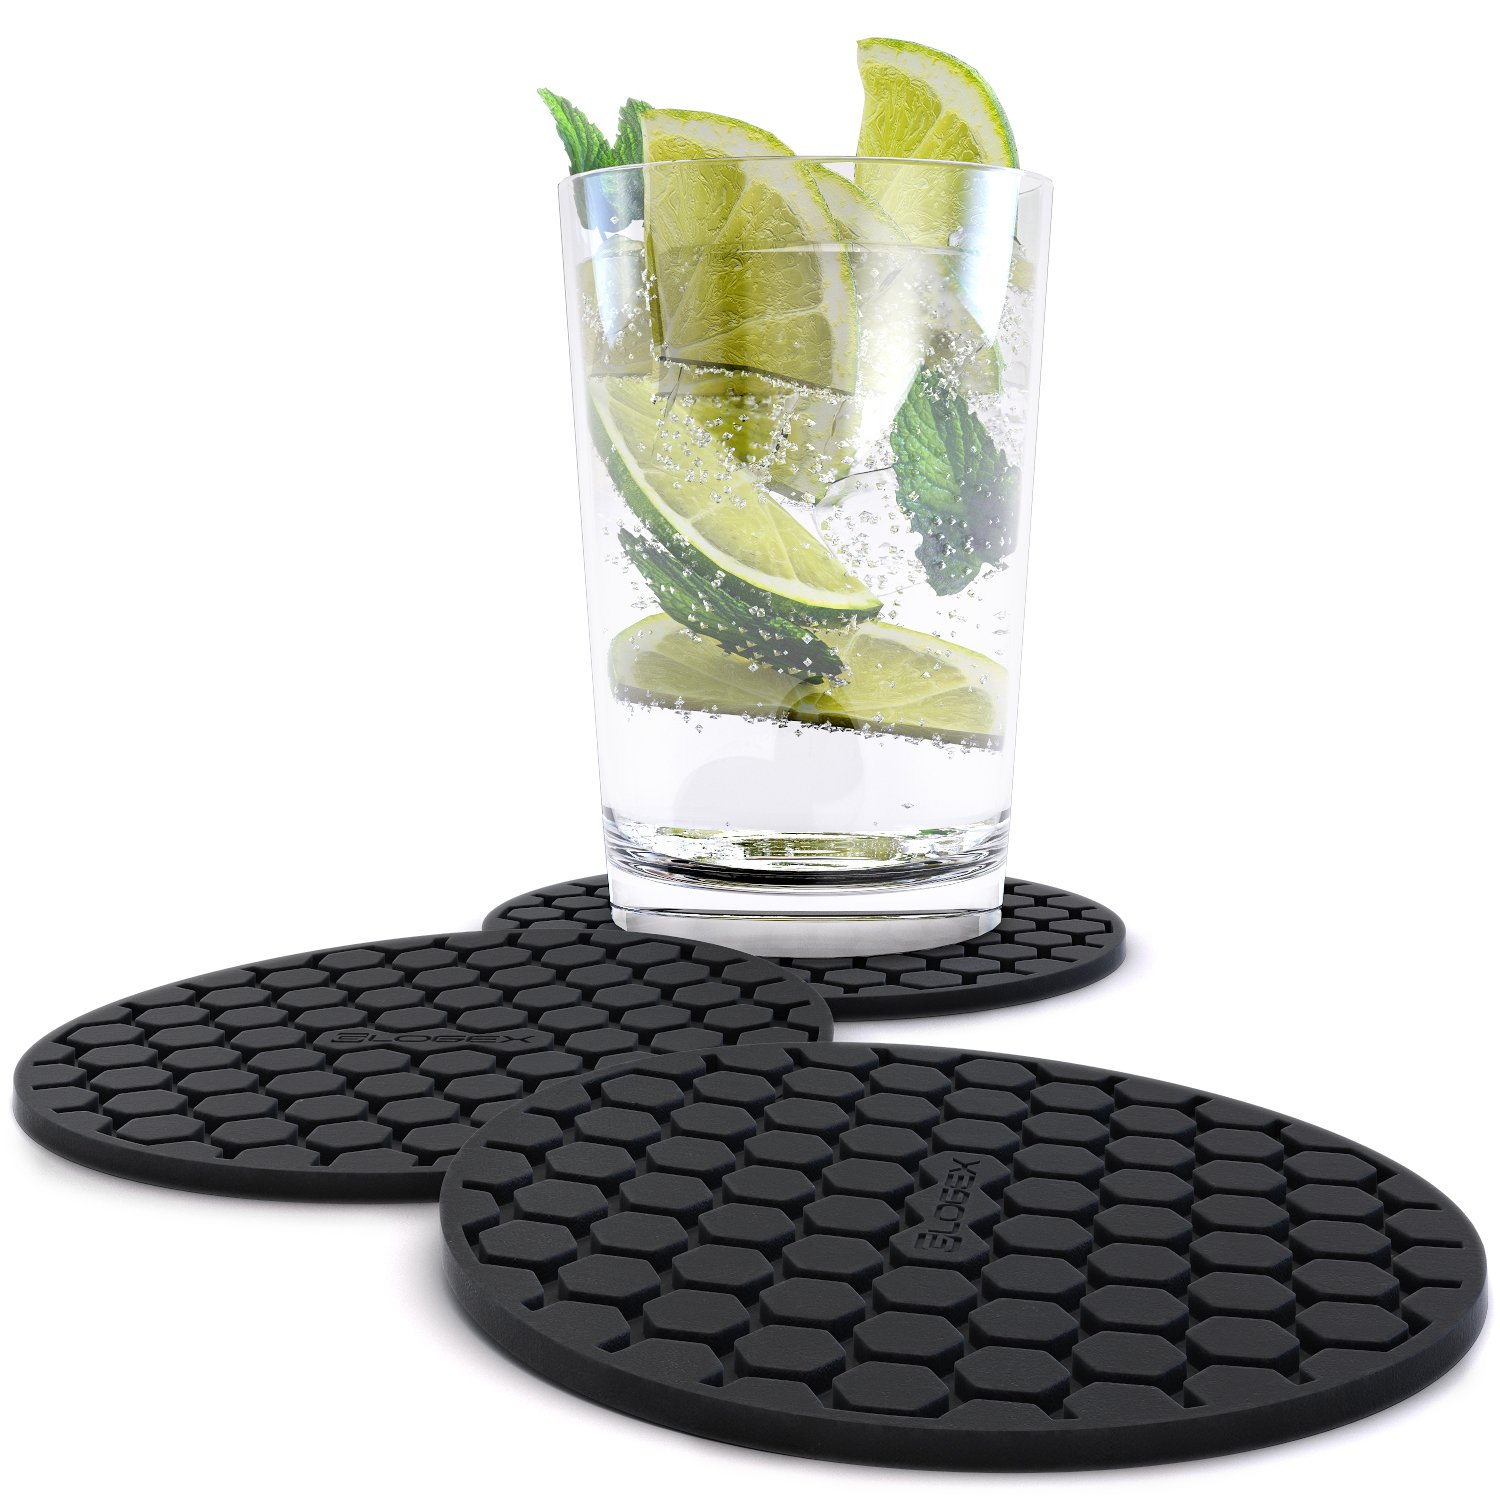 Drink Coasters Amazon Sleek Design Silicone Drink Coaster Set